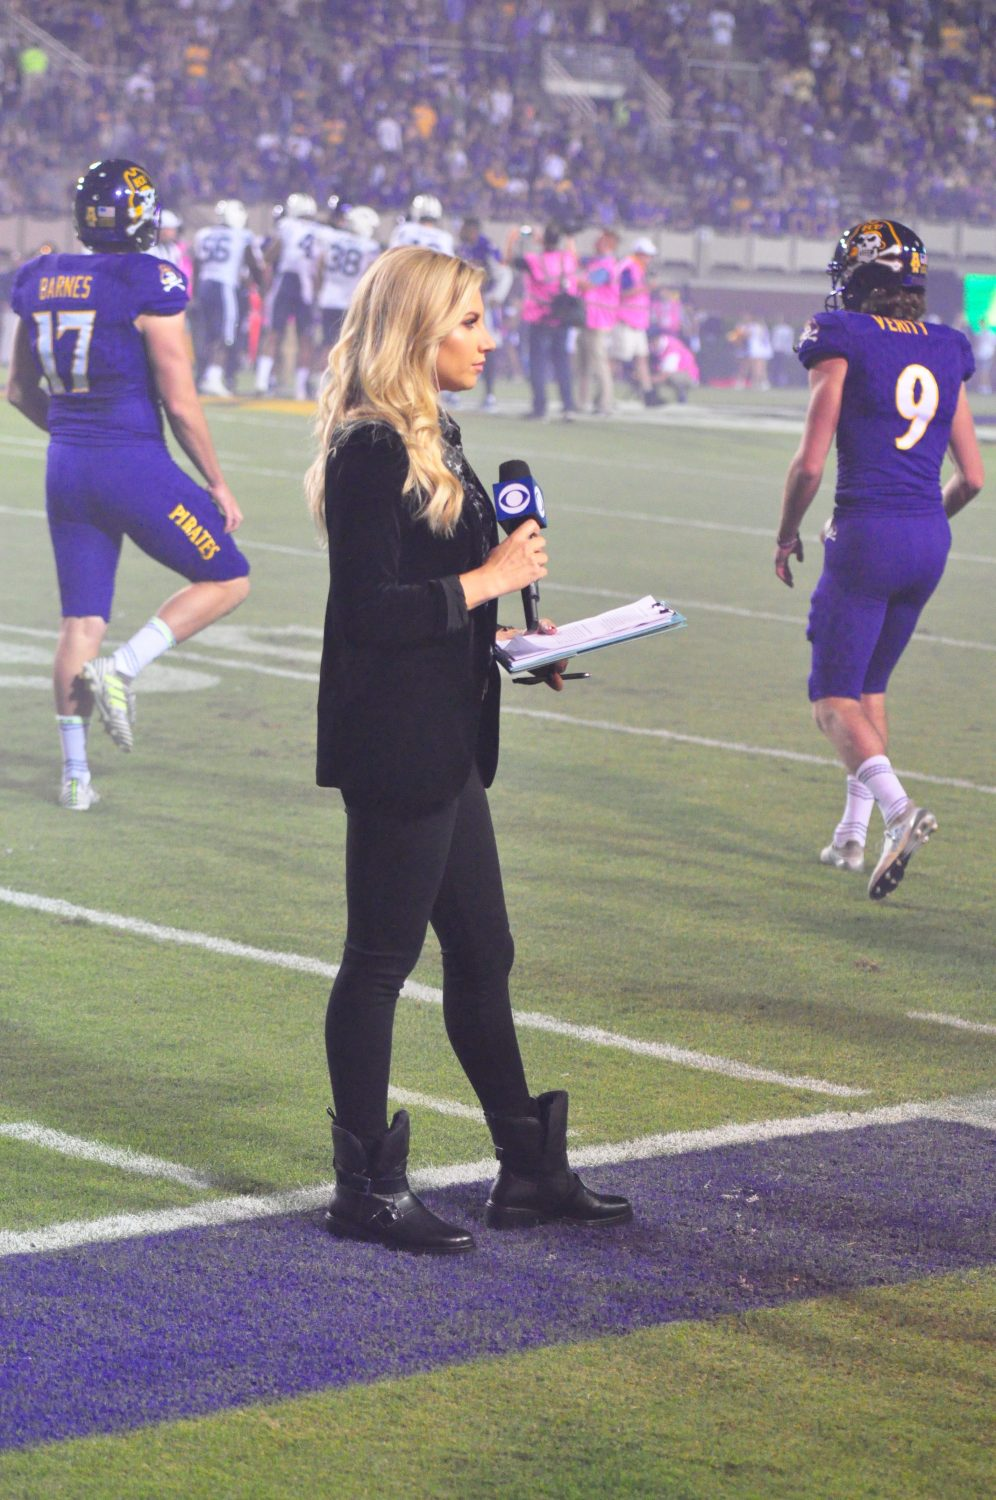 CBS Sports Network sideline reporter Melanie Collins awaits her cue from upstairs. (Photo by Al Myatt)